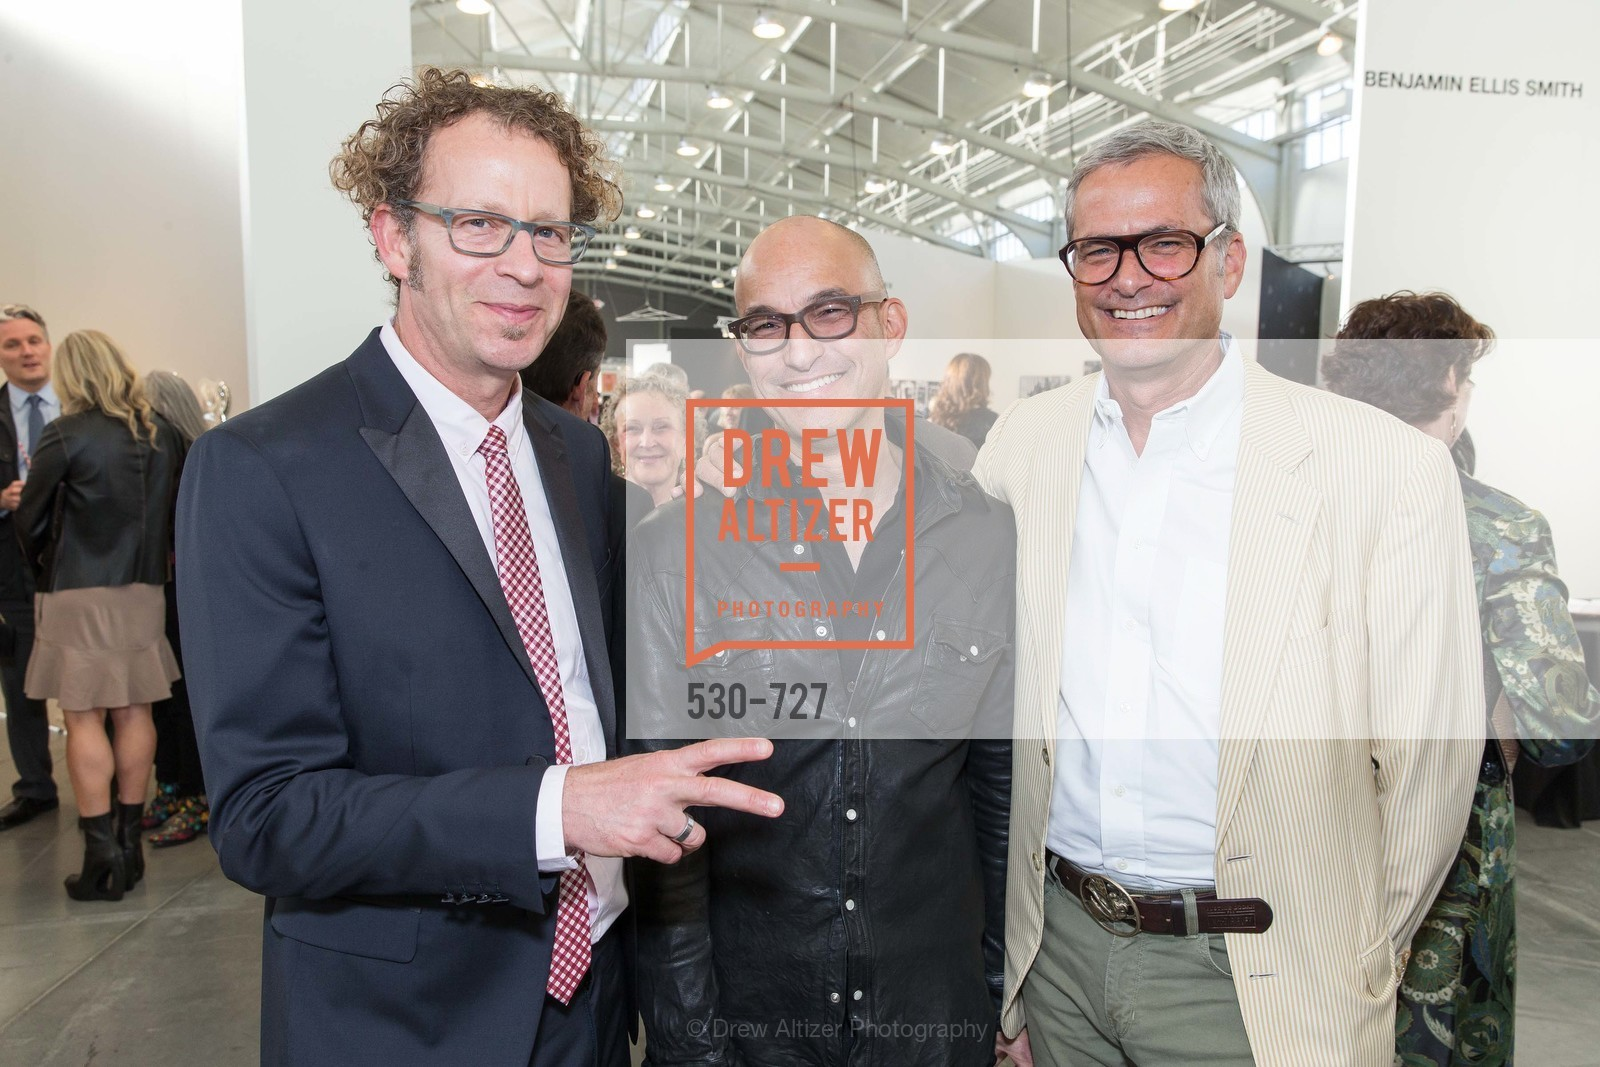 Ken Goldberg, Eric McDougall, Mark Ritchie, SAN FRANCISCO ART INSTITUTE Gala Honoring Art Visionary and Advocate ROSELYNE CHROMAN SWIG, US, May 13th, 2015,Drew Altizer, Drew Altizer Photography, full-service agency, private events, San Francisco photographer, photographer california